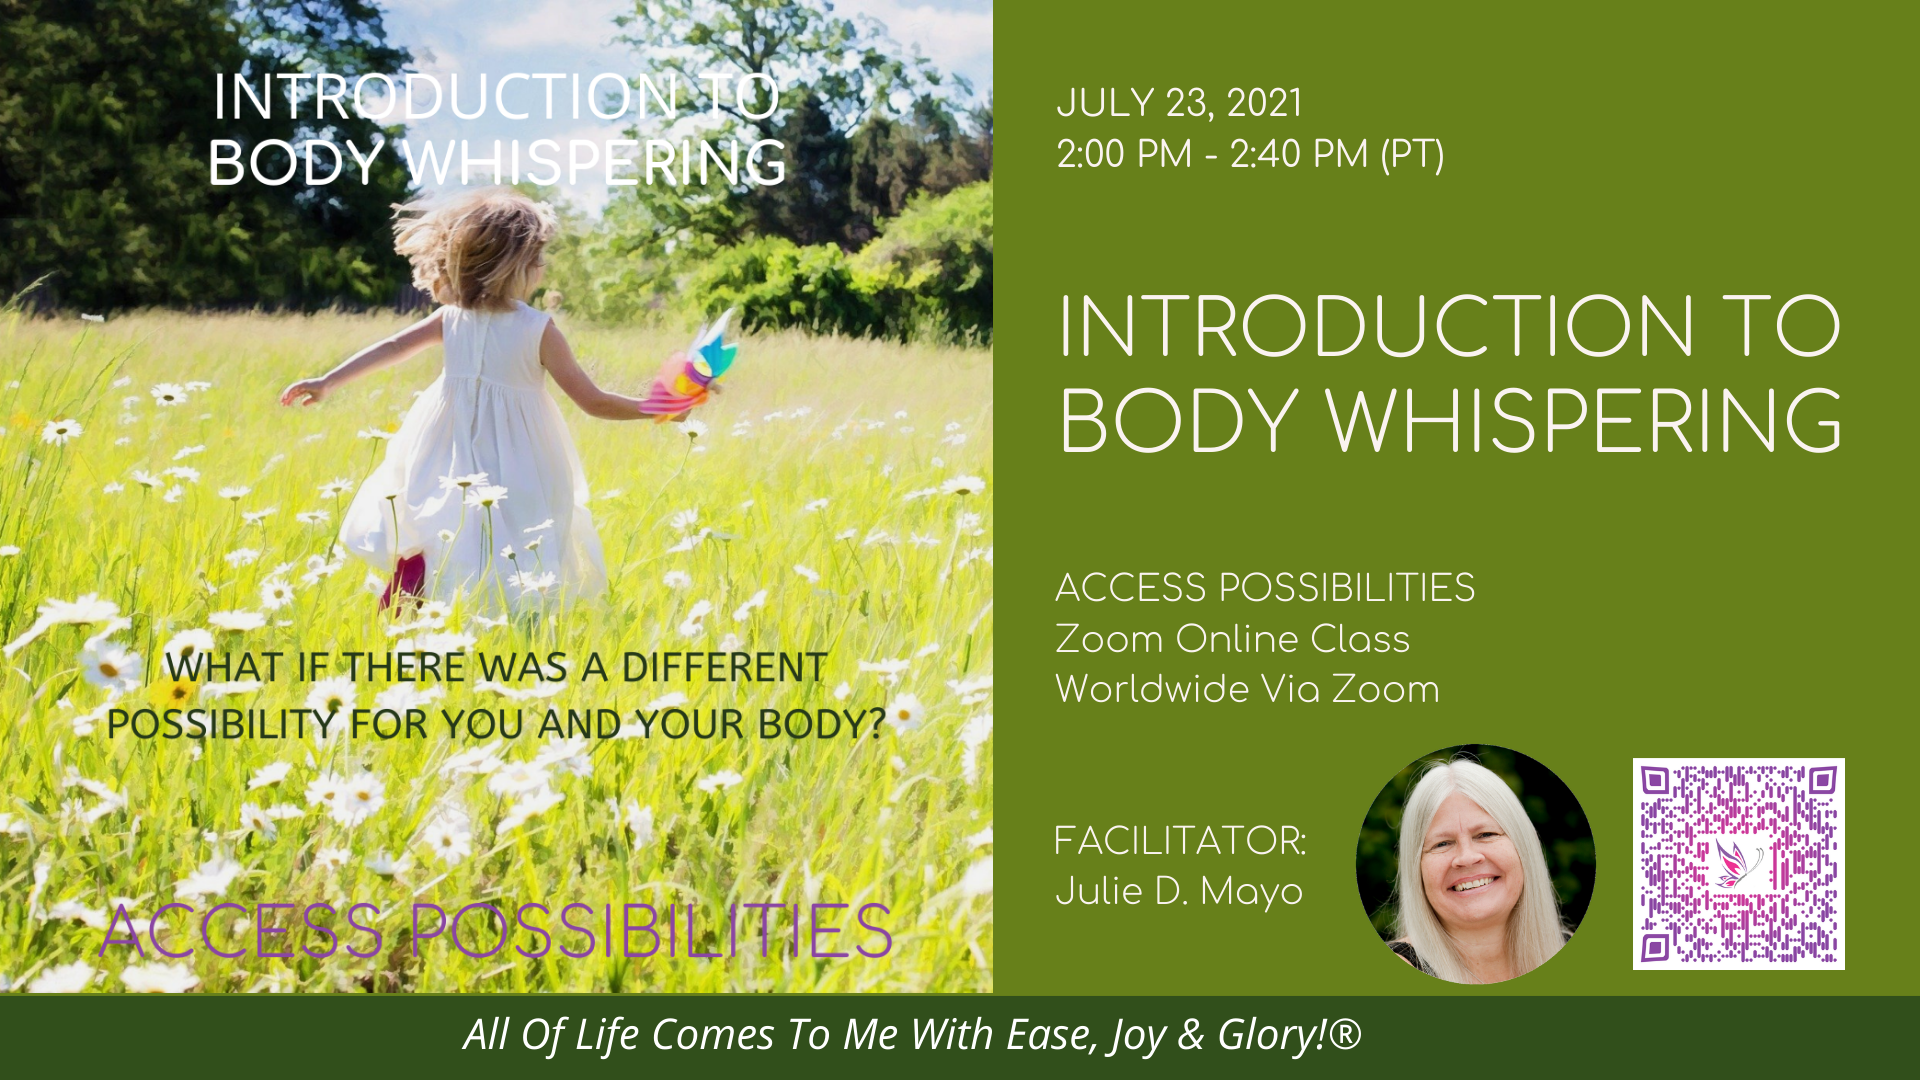 Introduction To Body Whispering Zoom Online Class Details | July 23 | Access Possibilities